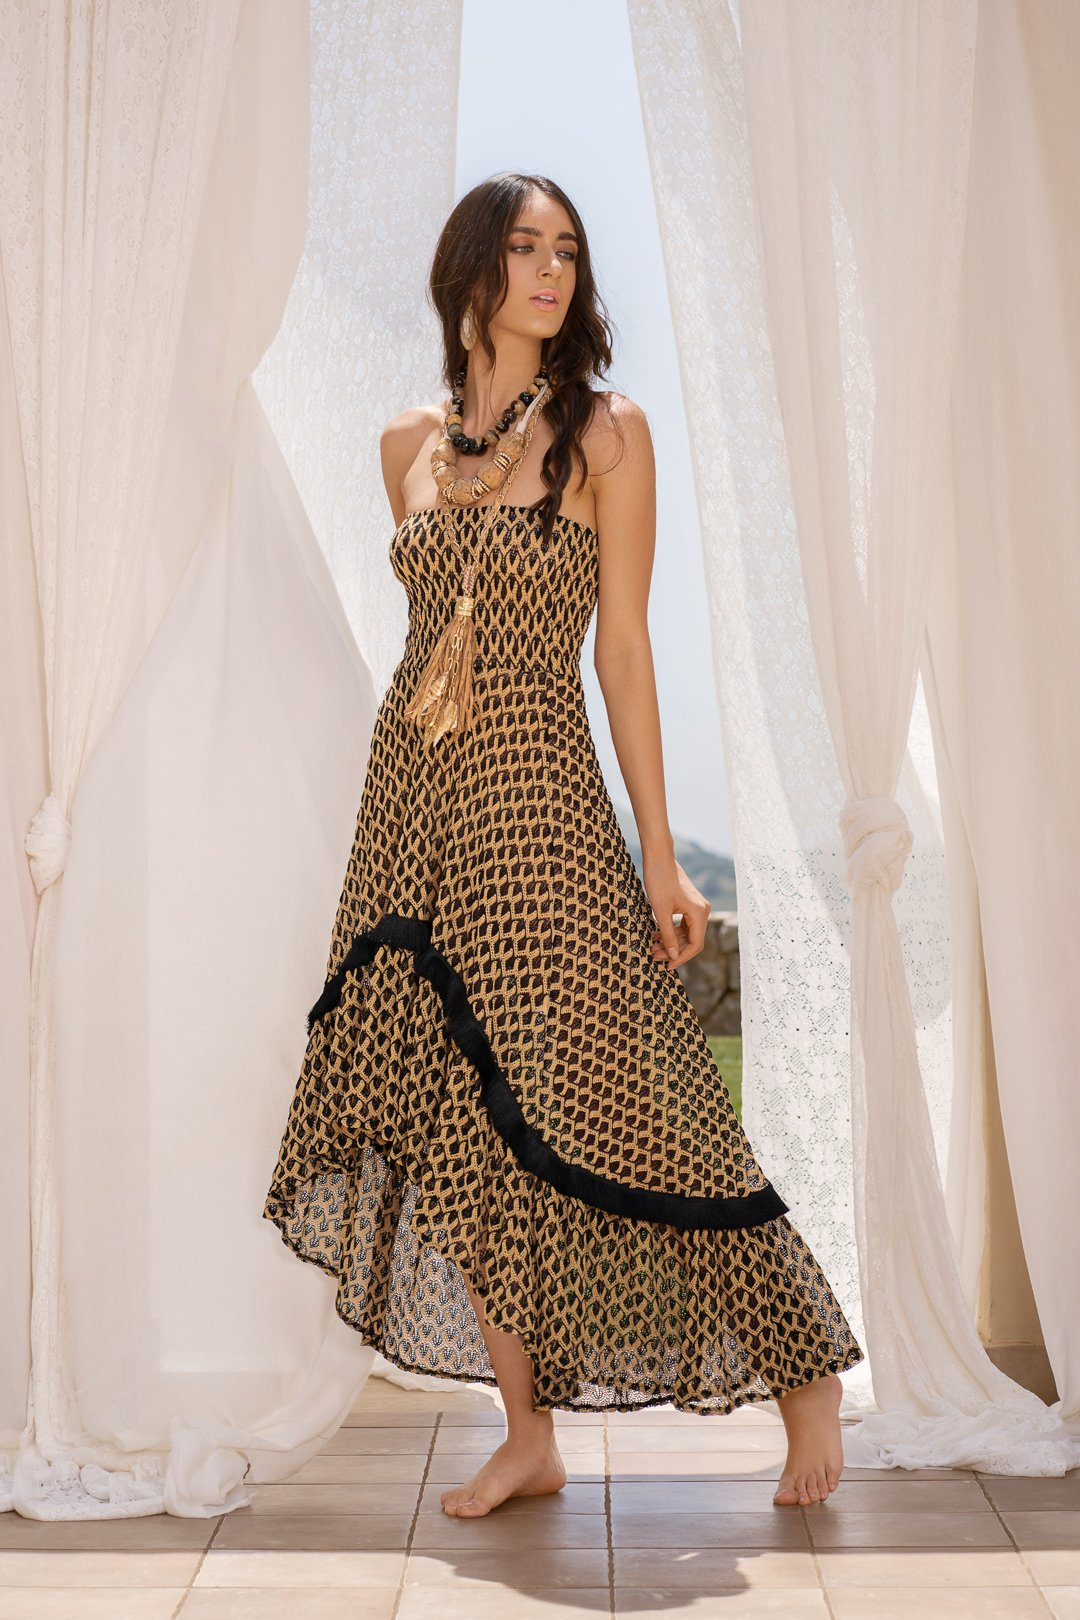 SHOPPING ON LINE PHO FIRENZE ABITO / GONNA LUNGA IN TESSUTO RACHEL NEW COLLECTION WOMEN'S SPRING SUMMER 2021